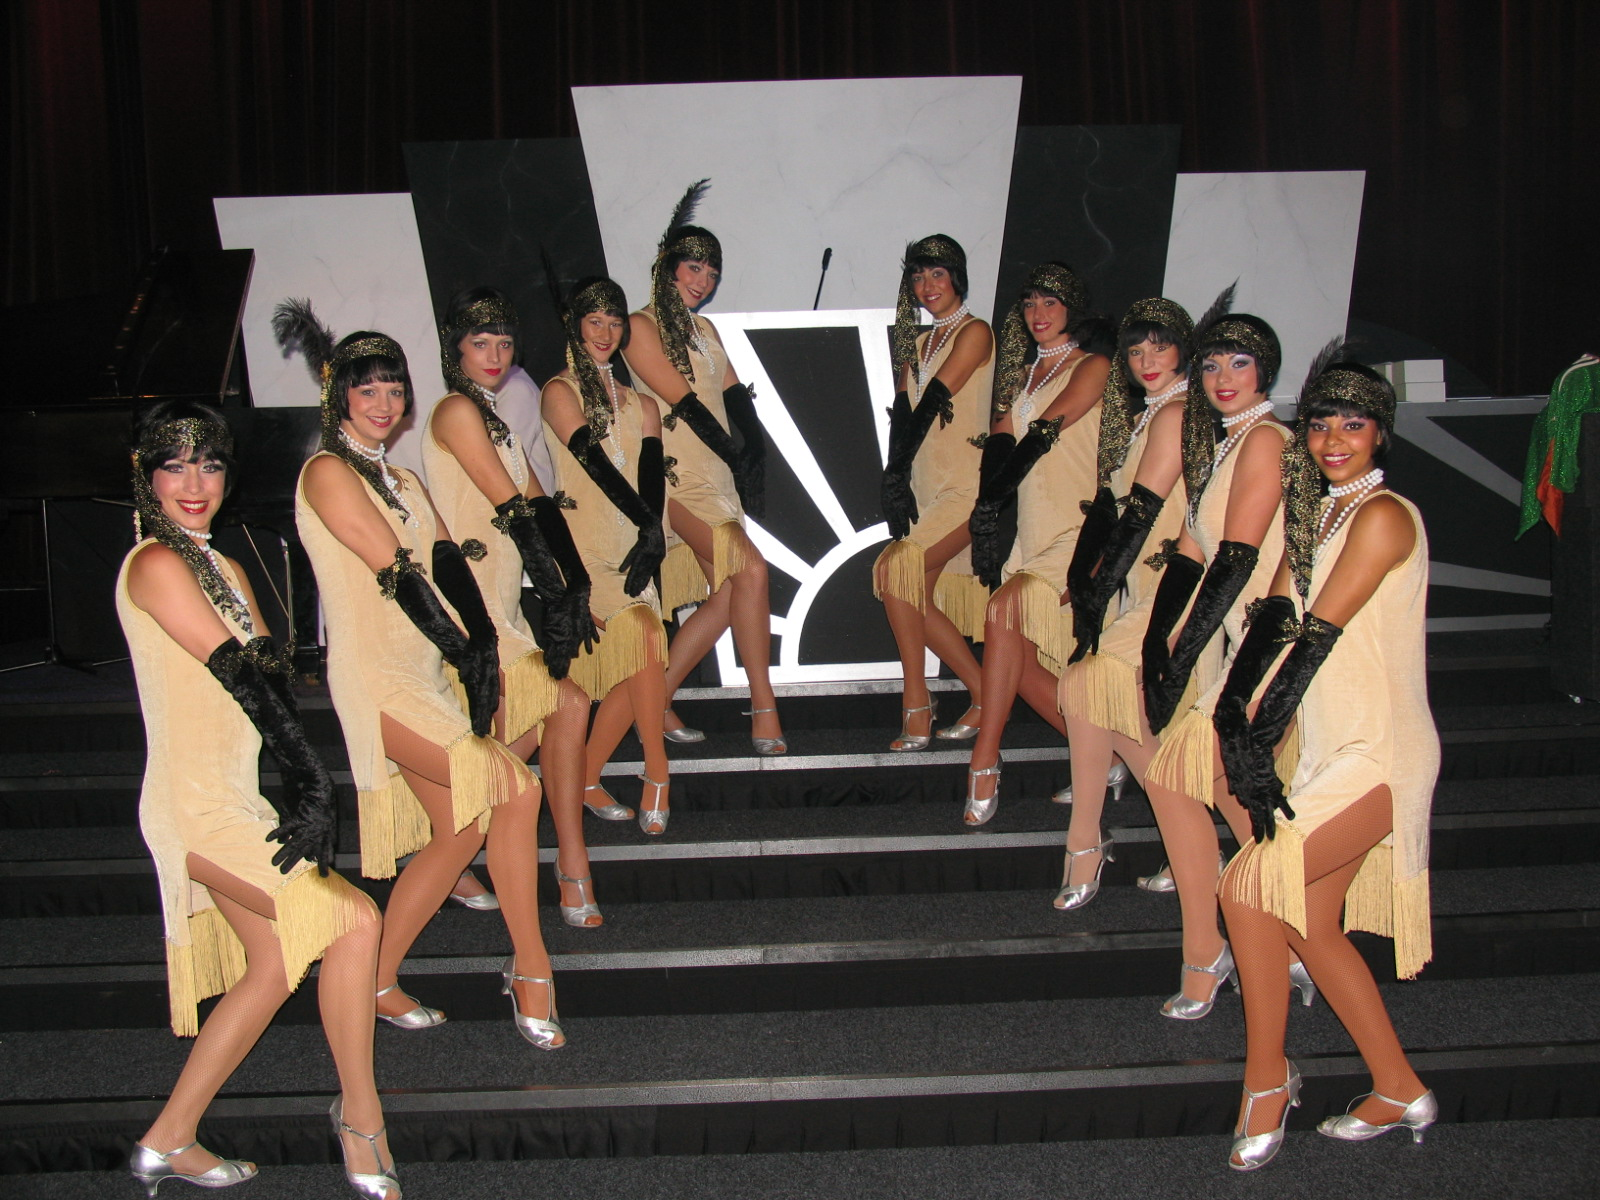 The Gatsby Dancers - 1920's Gatsby Dancers